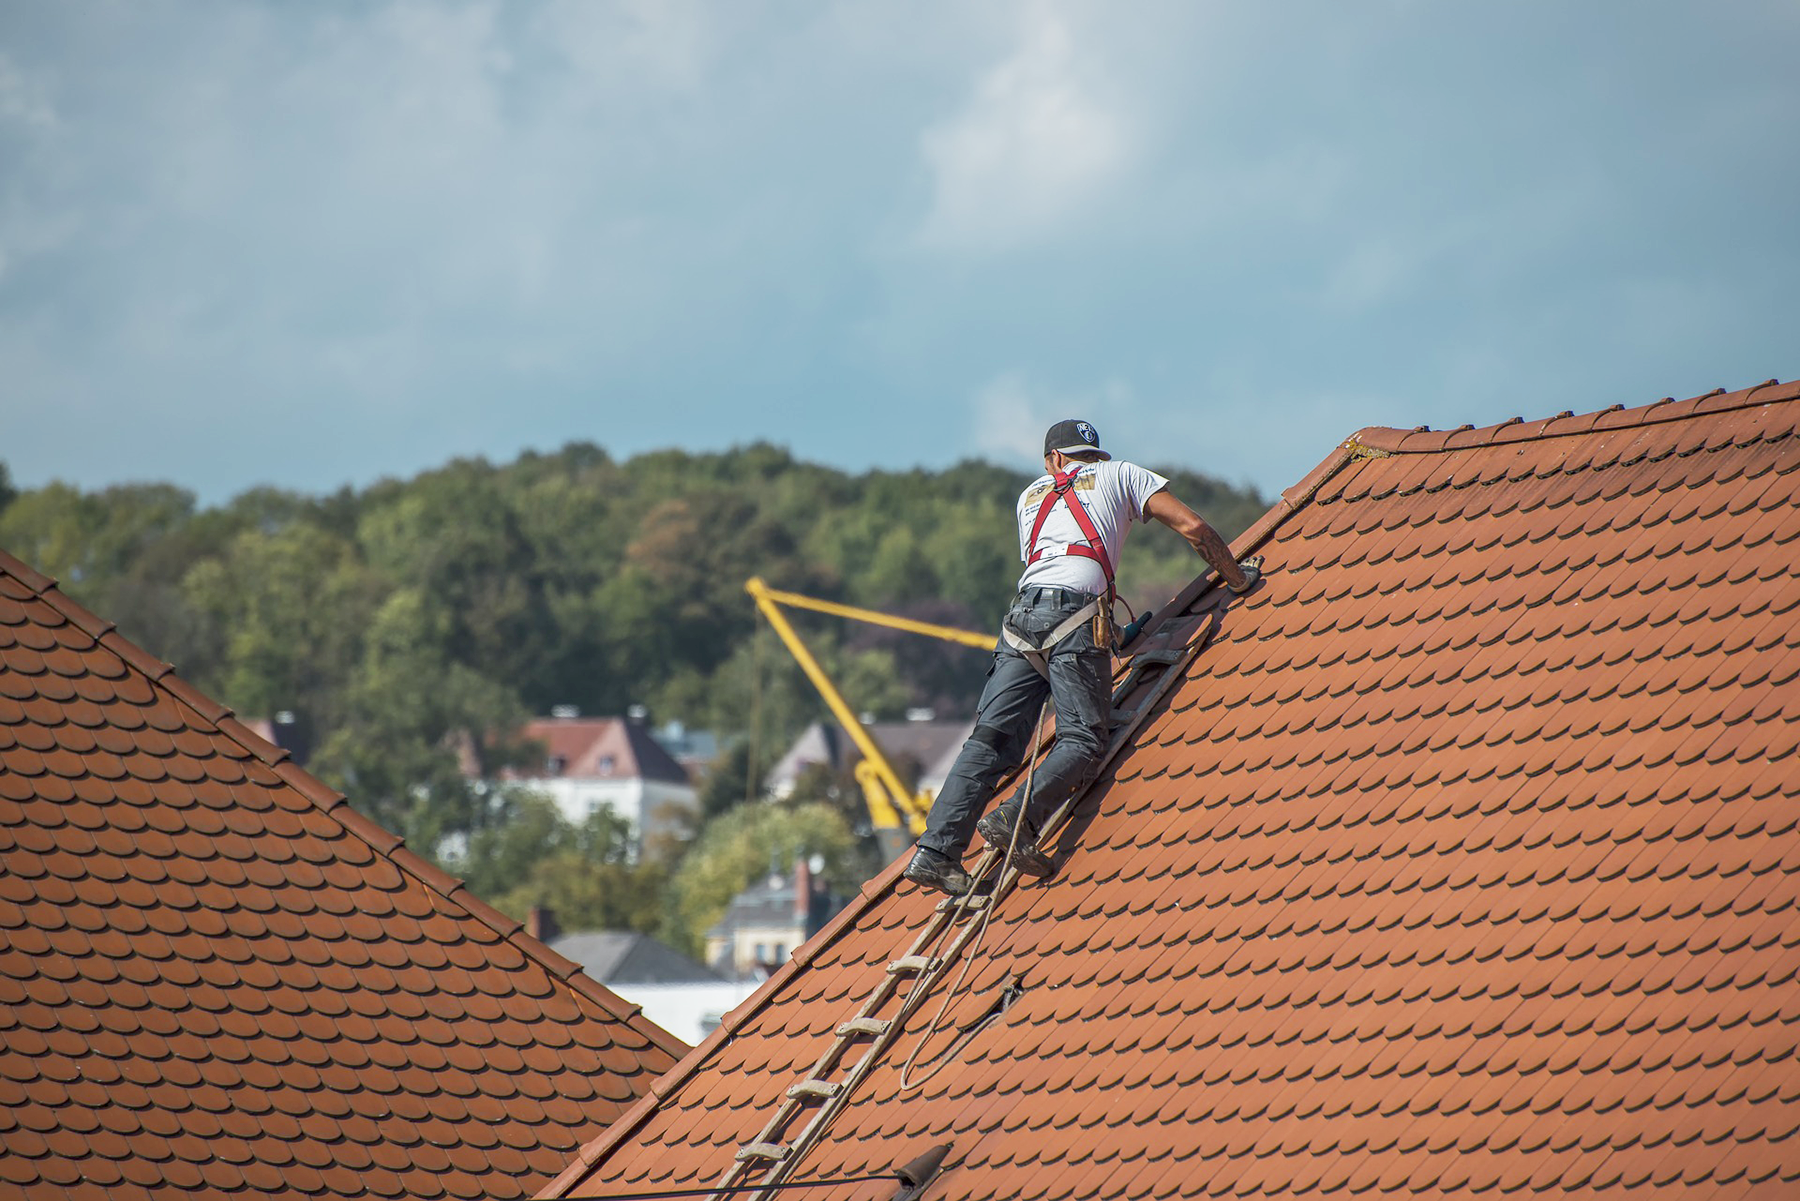 Roofers York Pa Checklist Hiring A Roofing Contractor In York Pa Red Lion Pa And Dallastown Pa Define The Roof Cool Roof Roofing Contractors Roof Repair